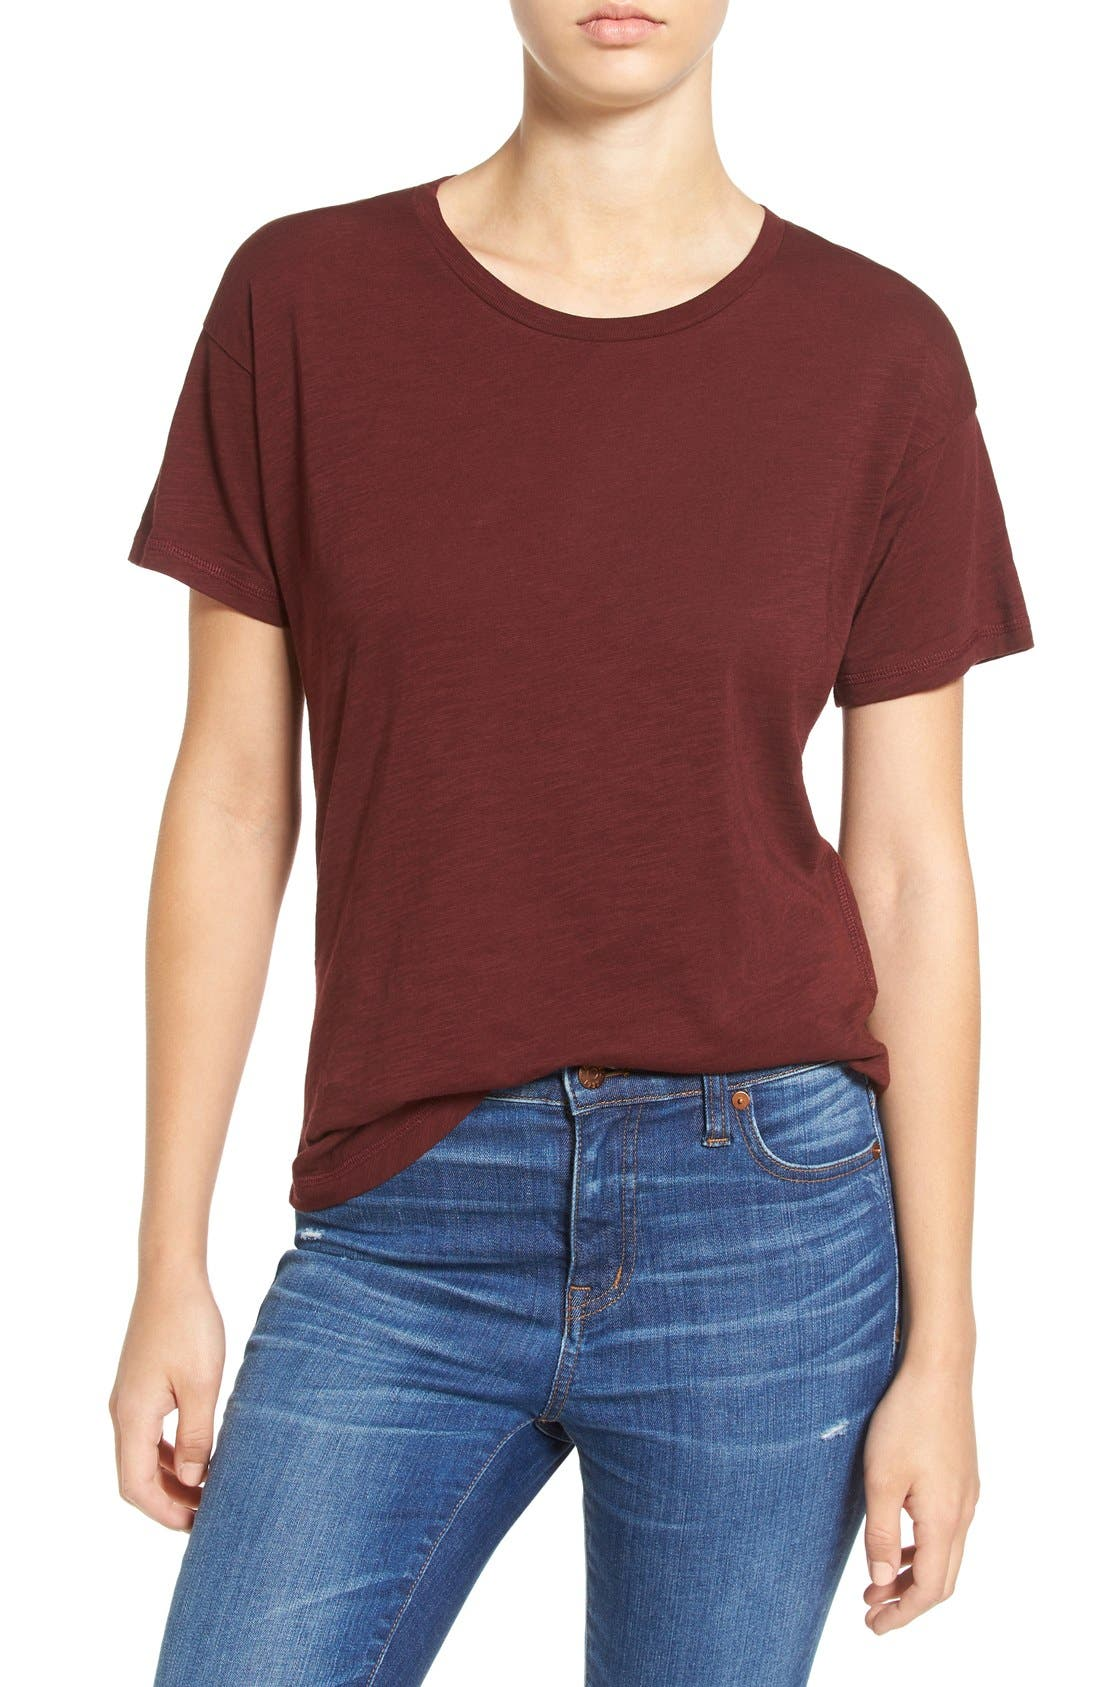 Alternate Image 1 Selected - Madewell 'Whisper' Cotton Crewneck Tee